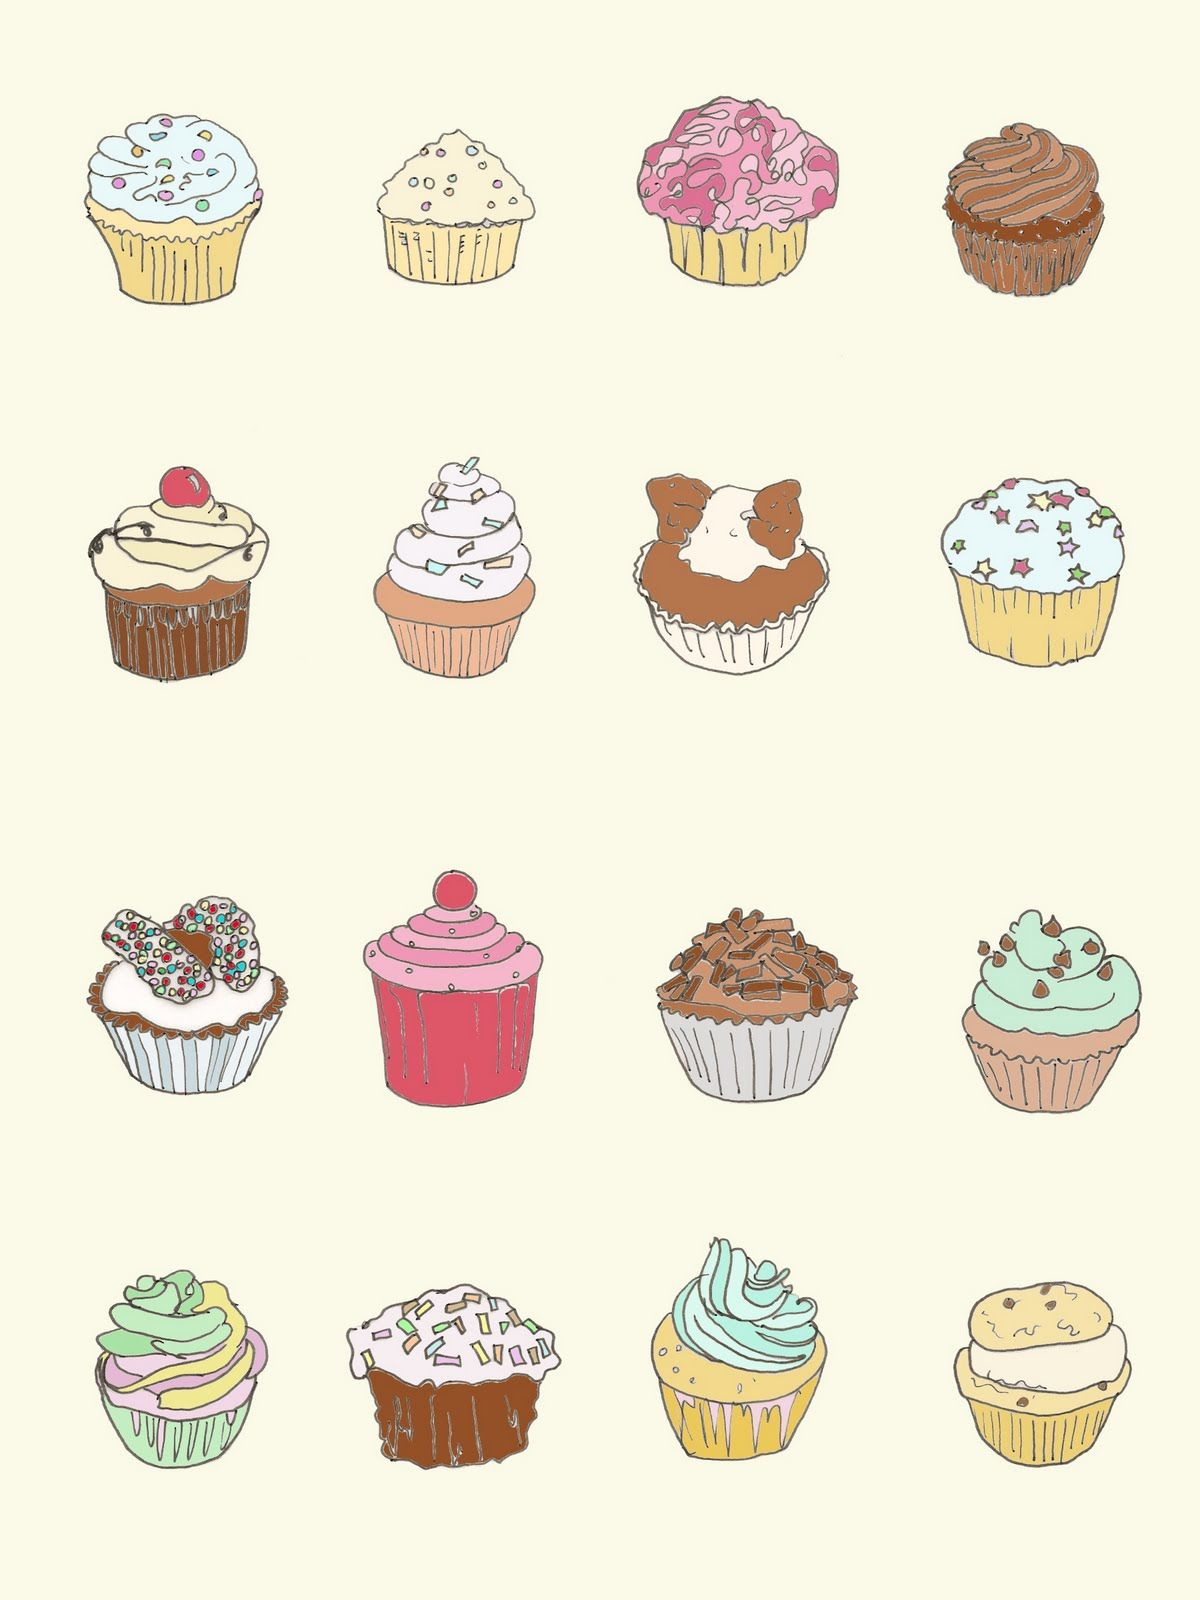 Uncategorized Drawing Of A Cupcake drawings of cupcakes google search illustration art search